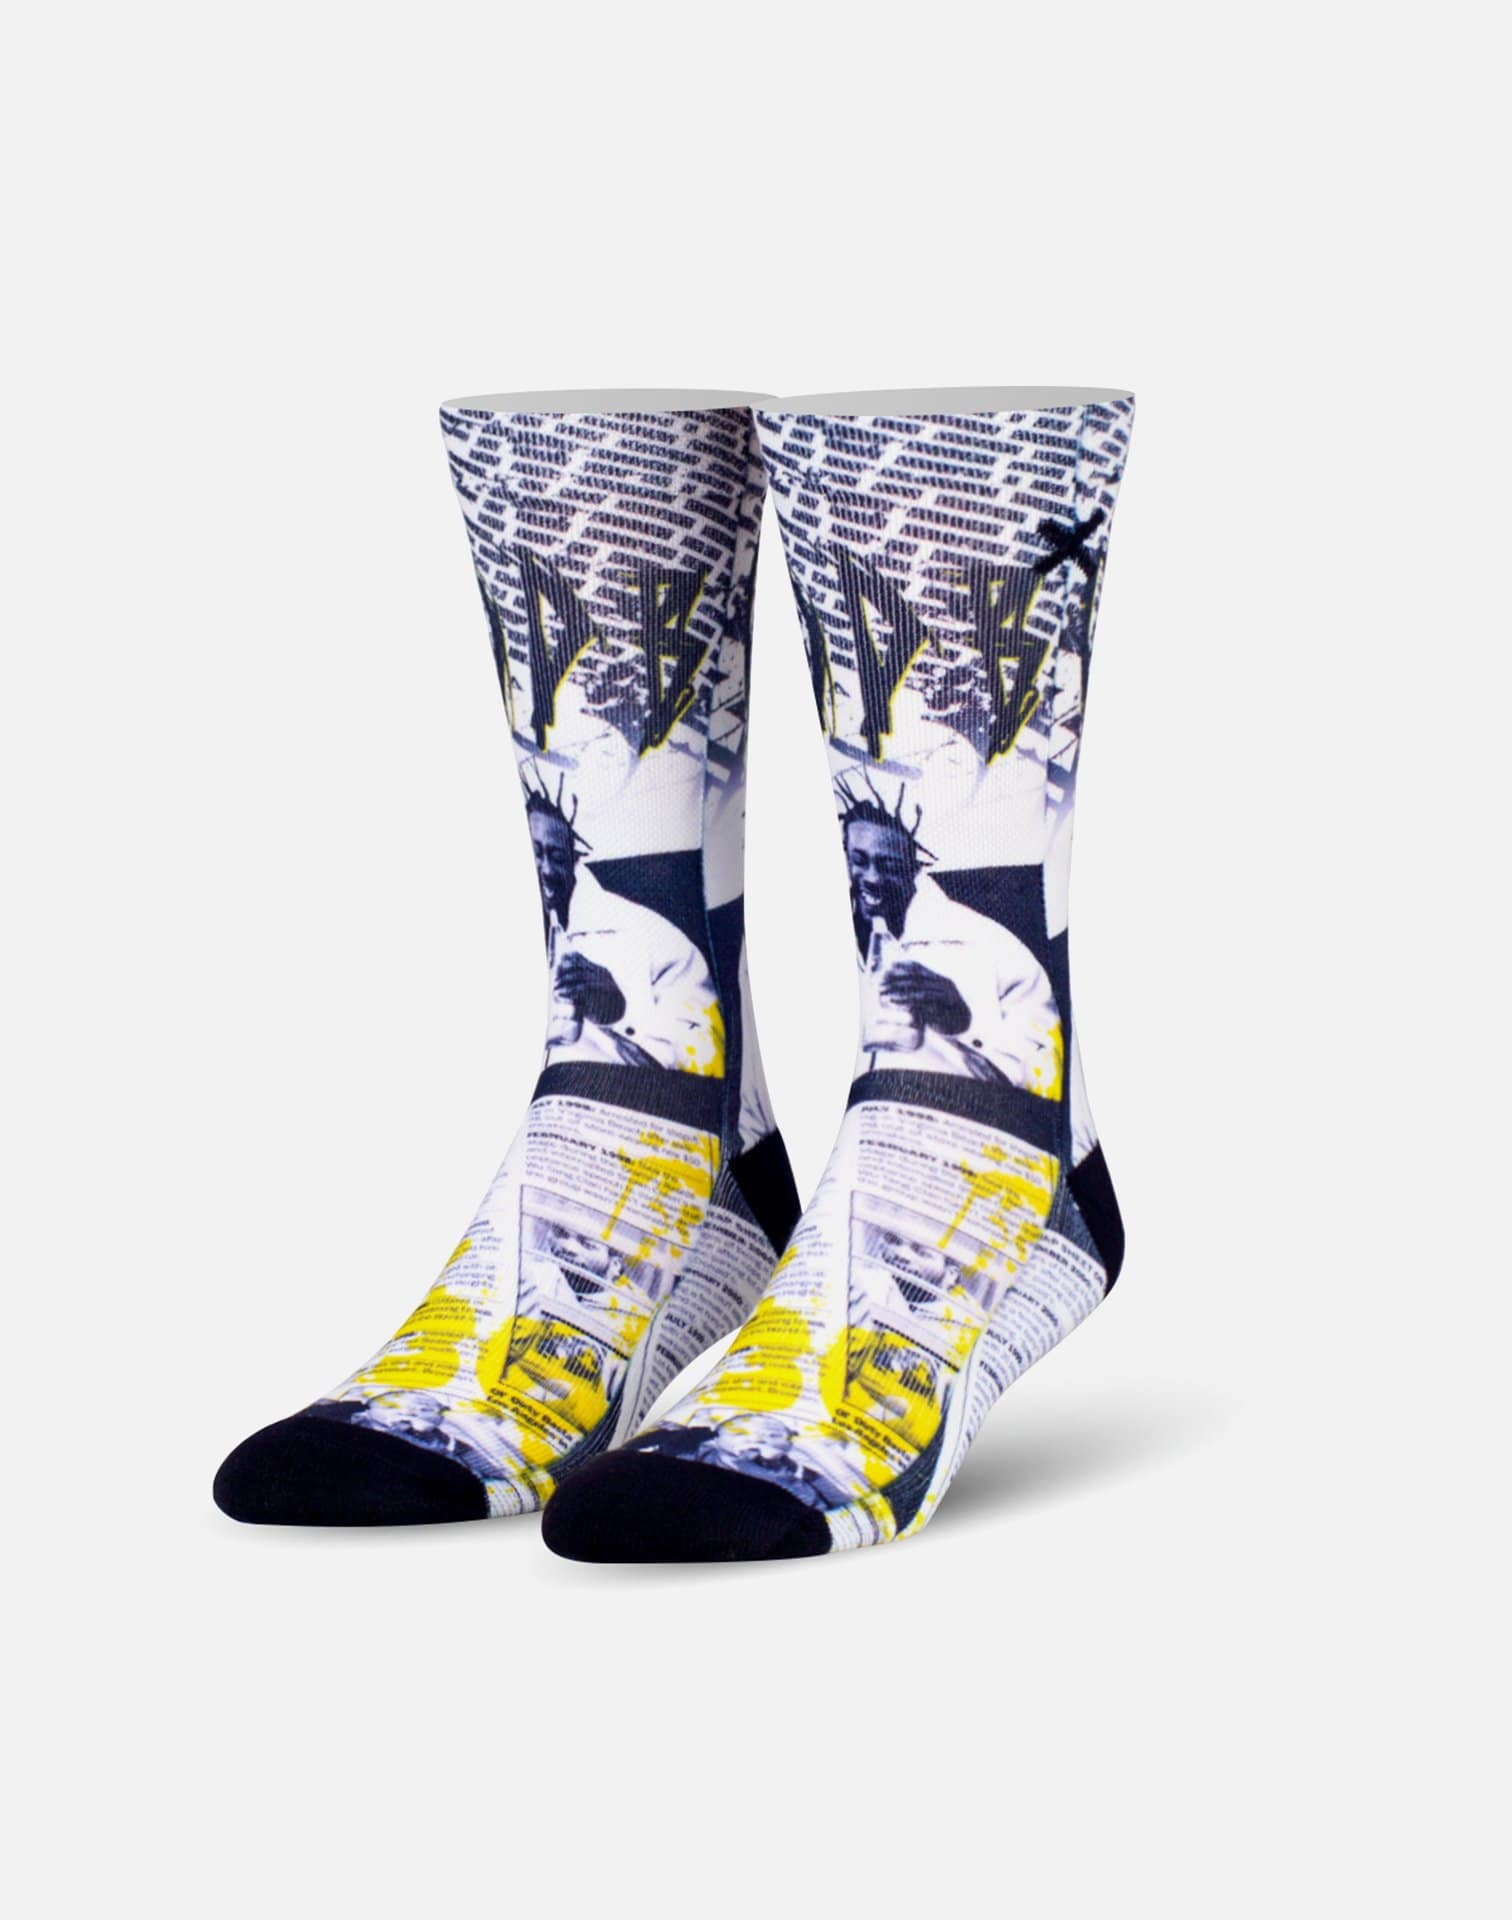 Odd Sox Ason Unique Socks